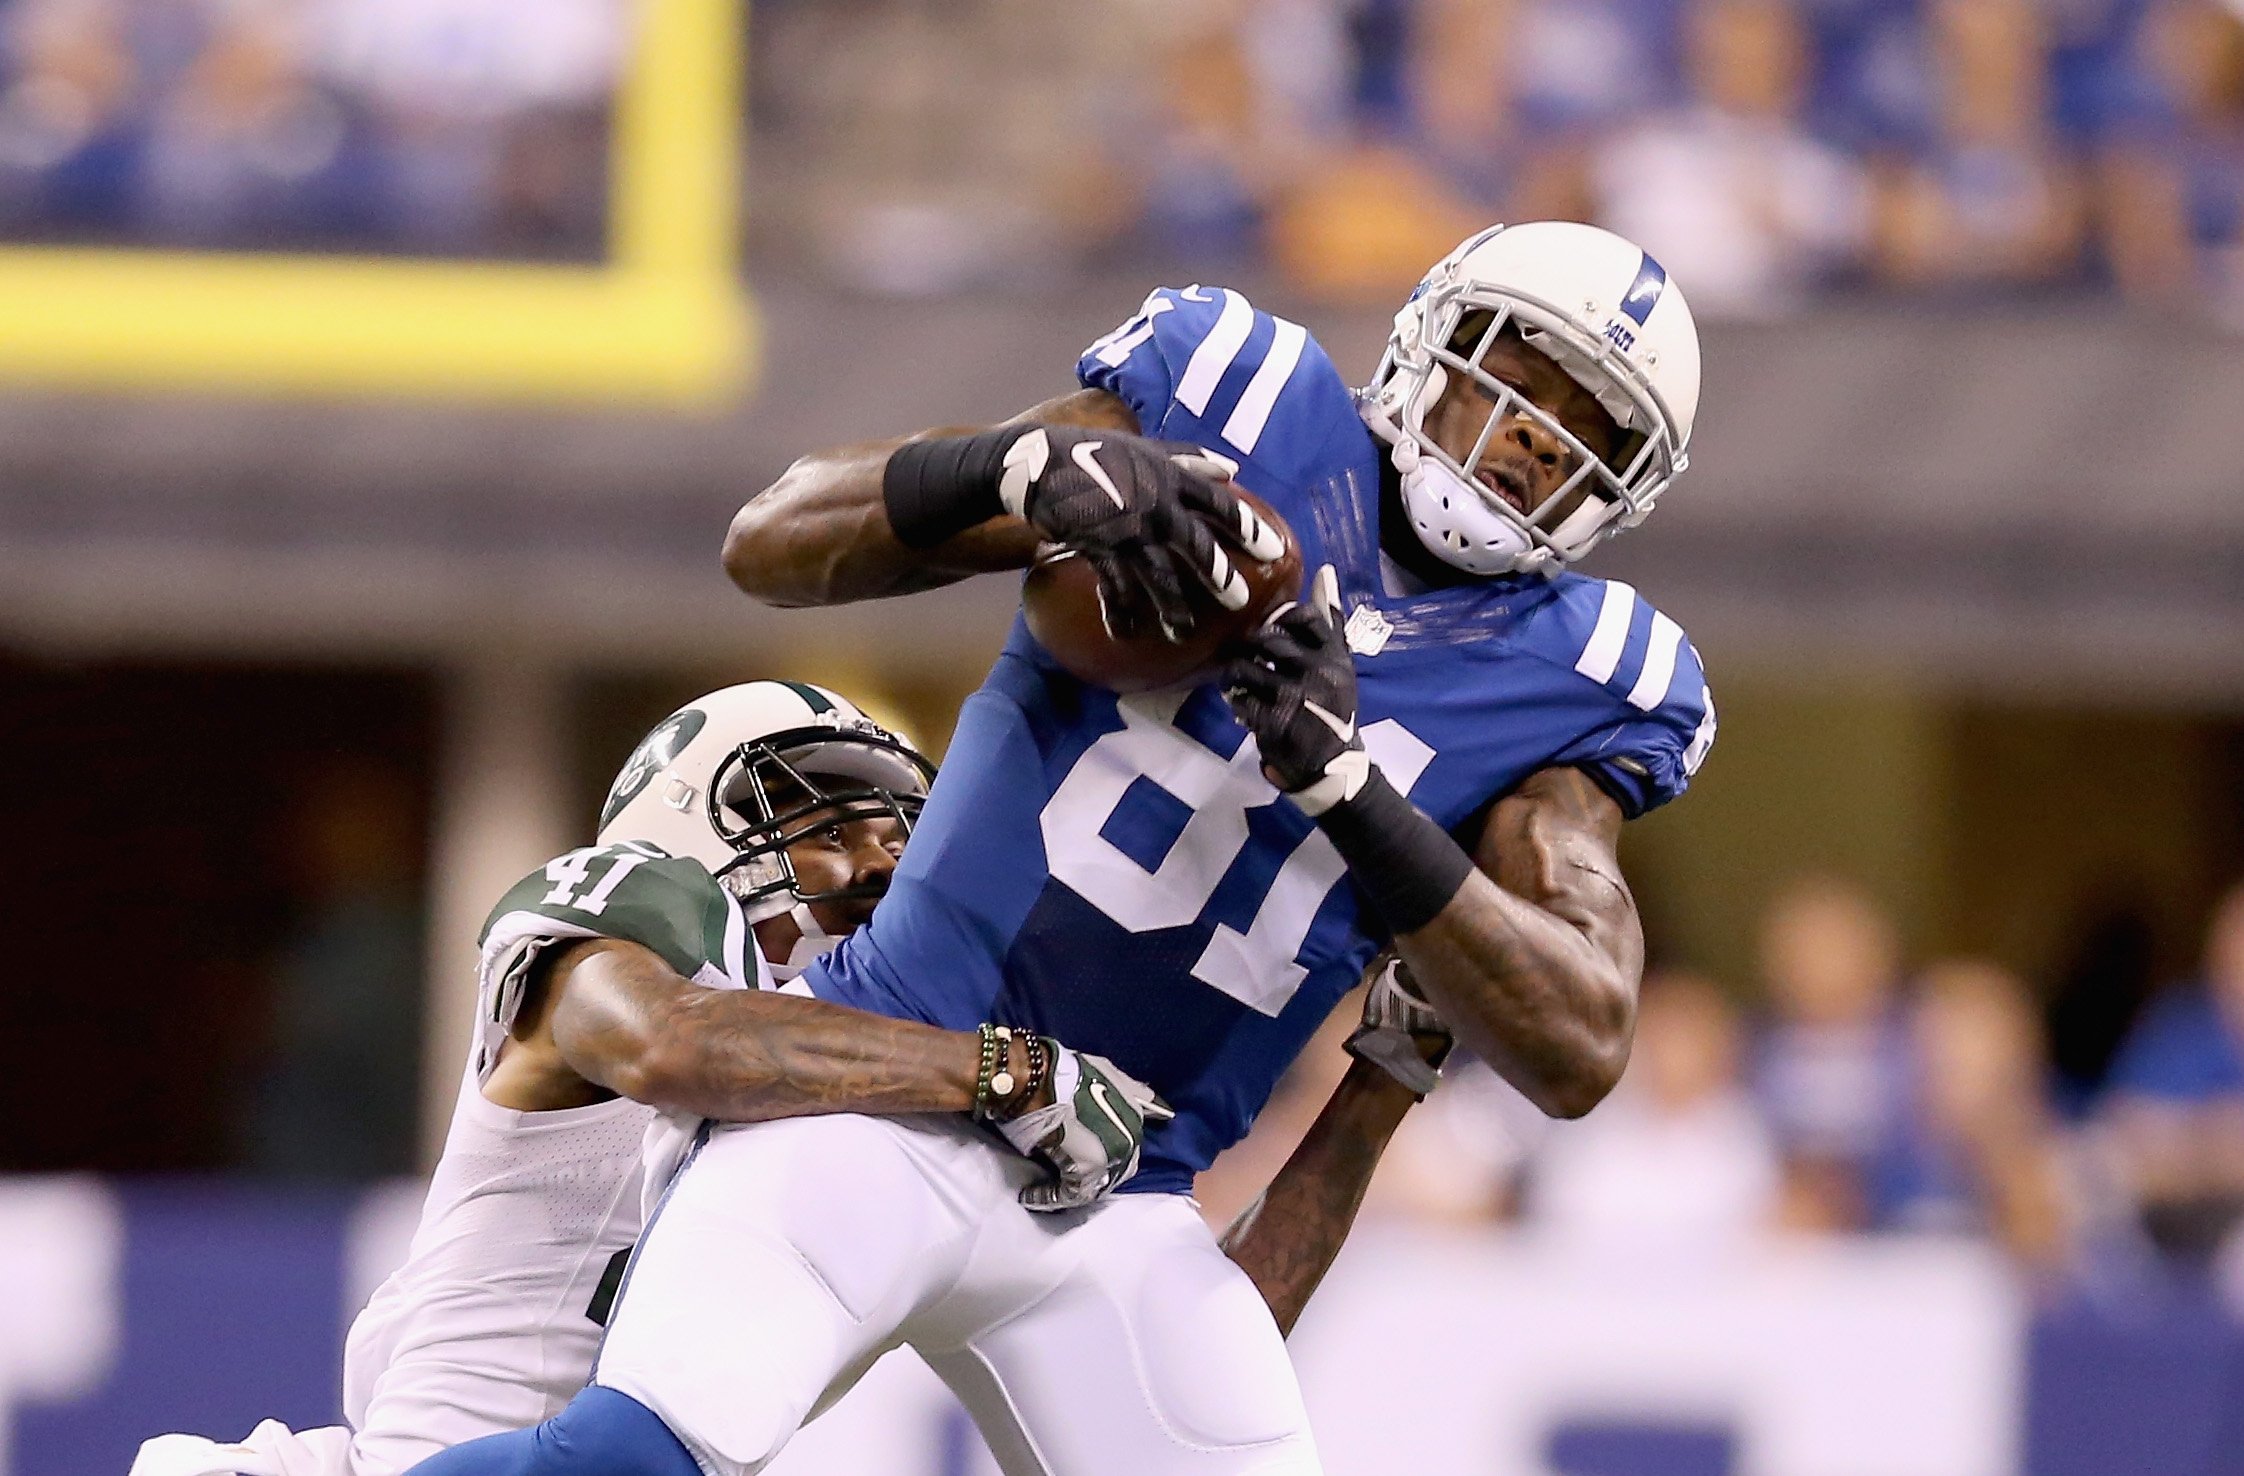 Andre Johnson has seen his role reduced in recent years. (Getty)